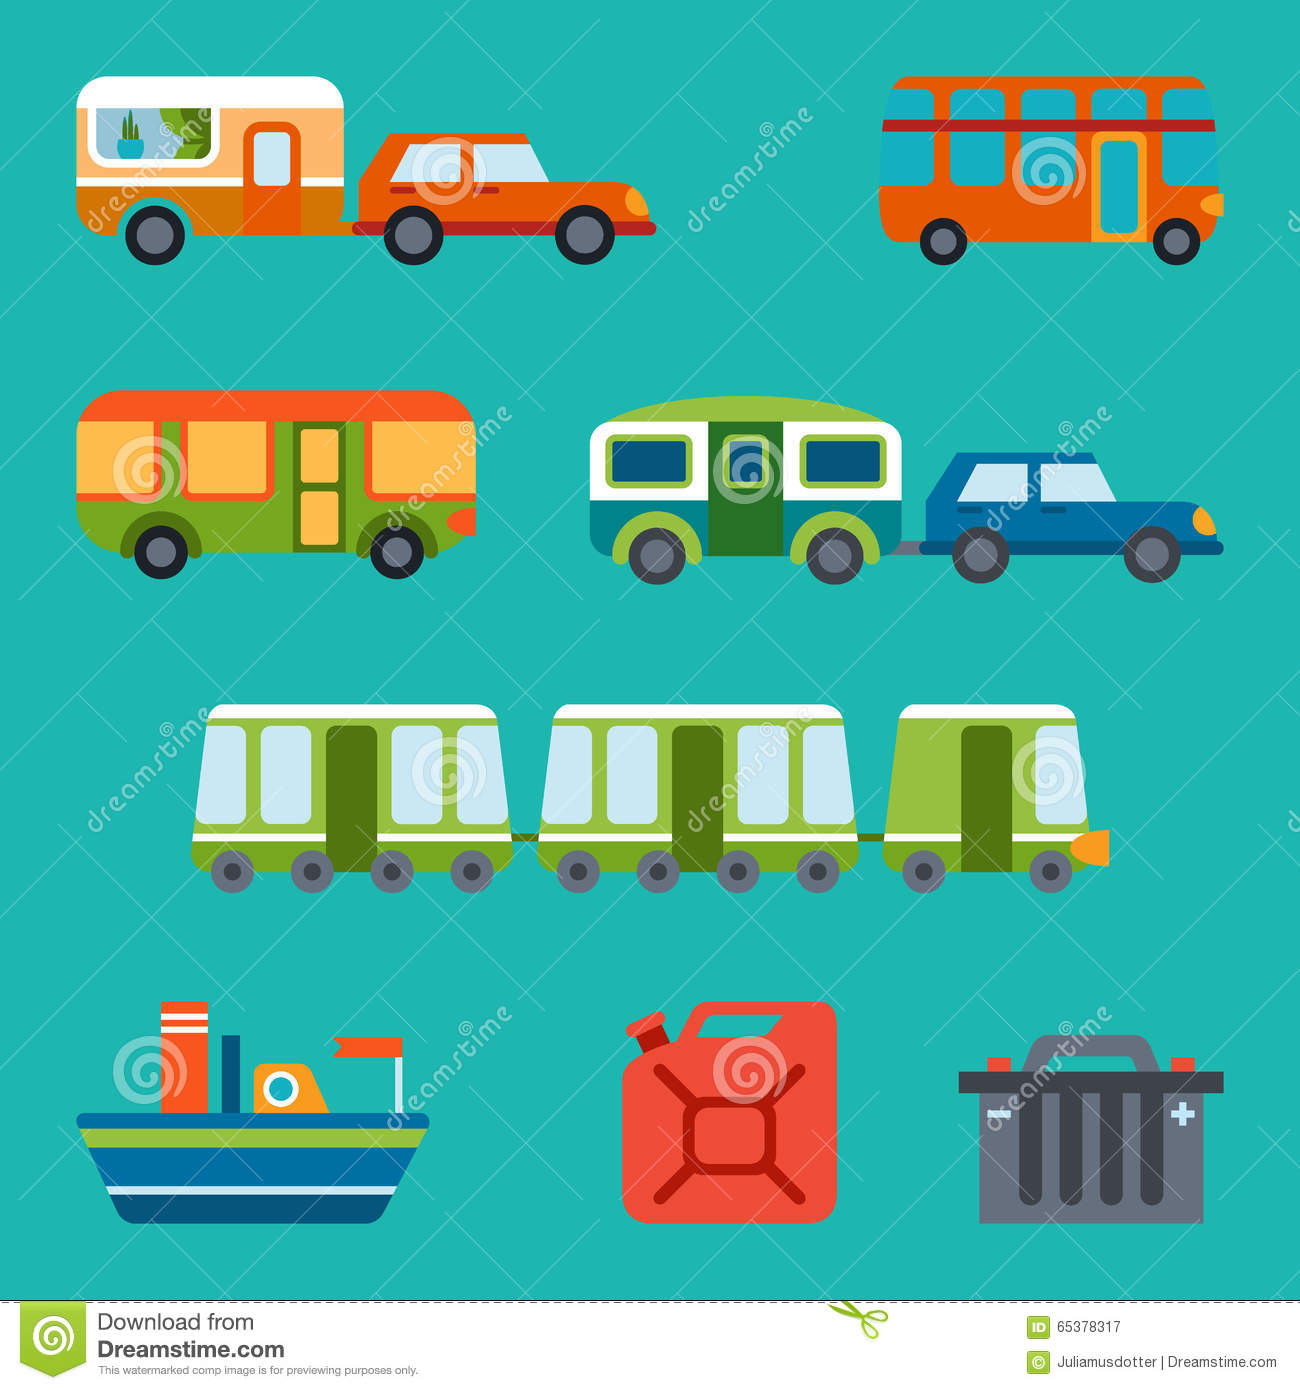 Travel Illustration With Different Types Of Transport Stock Vector ...